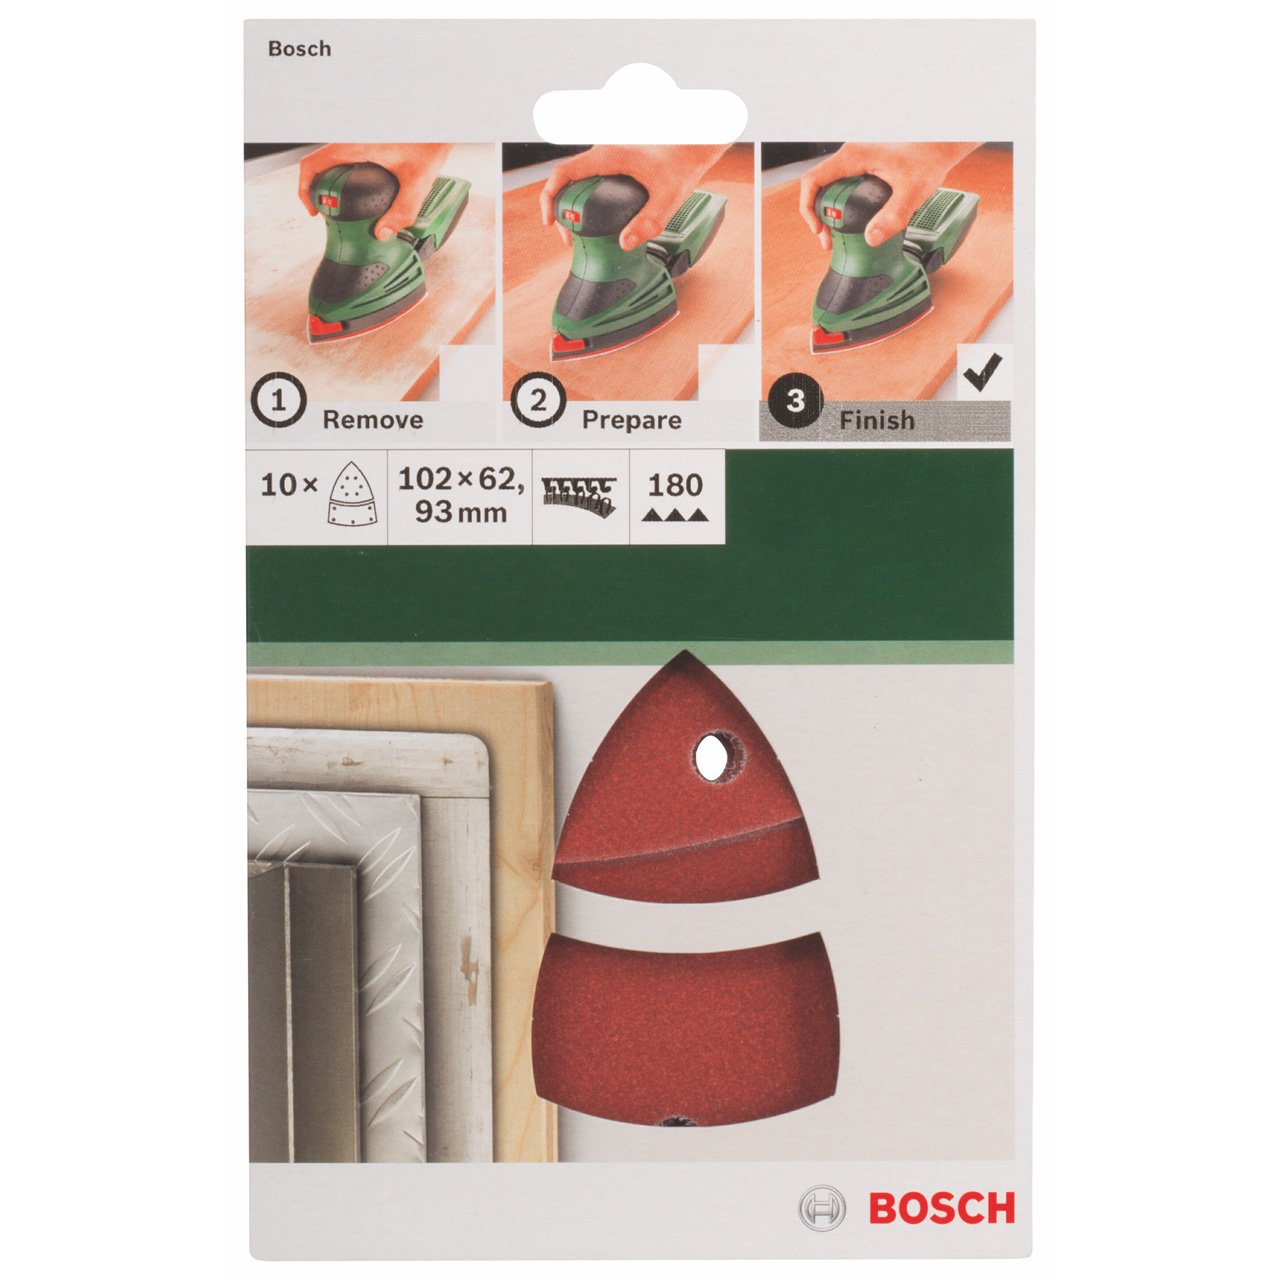 Bosch 2609256A62 Sanding Sheets for Orbital Sanders 102 x 62.93 cm Number of Holes 11 Grit 60 Multi-Purpose Pack of 10